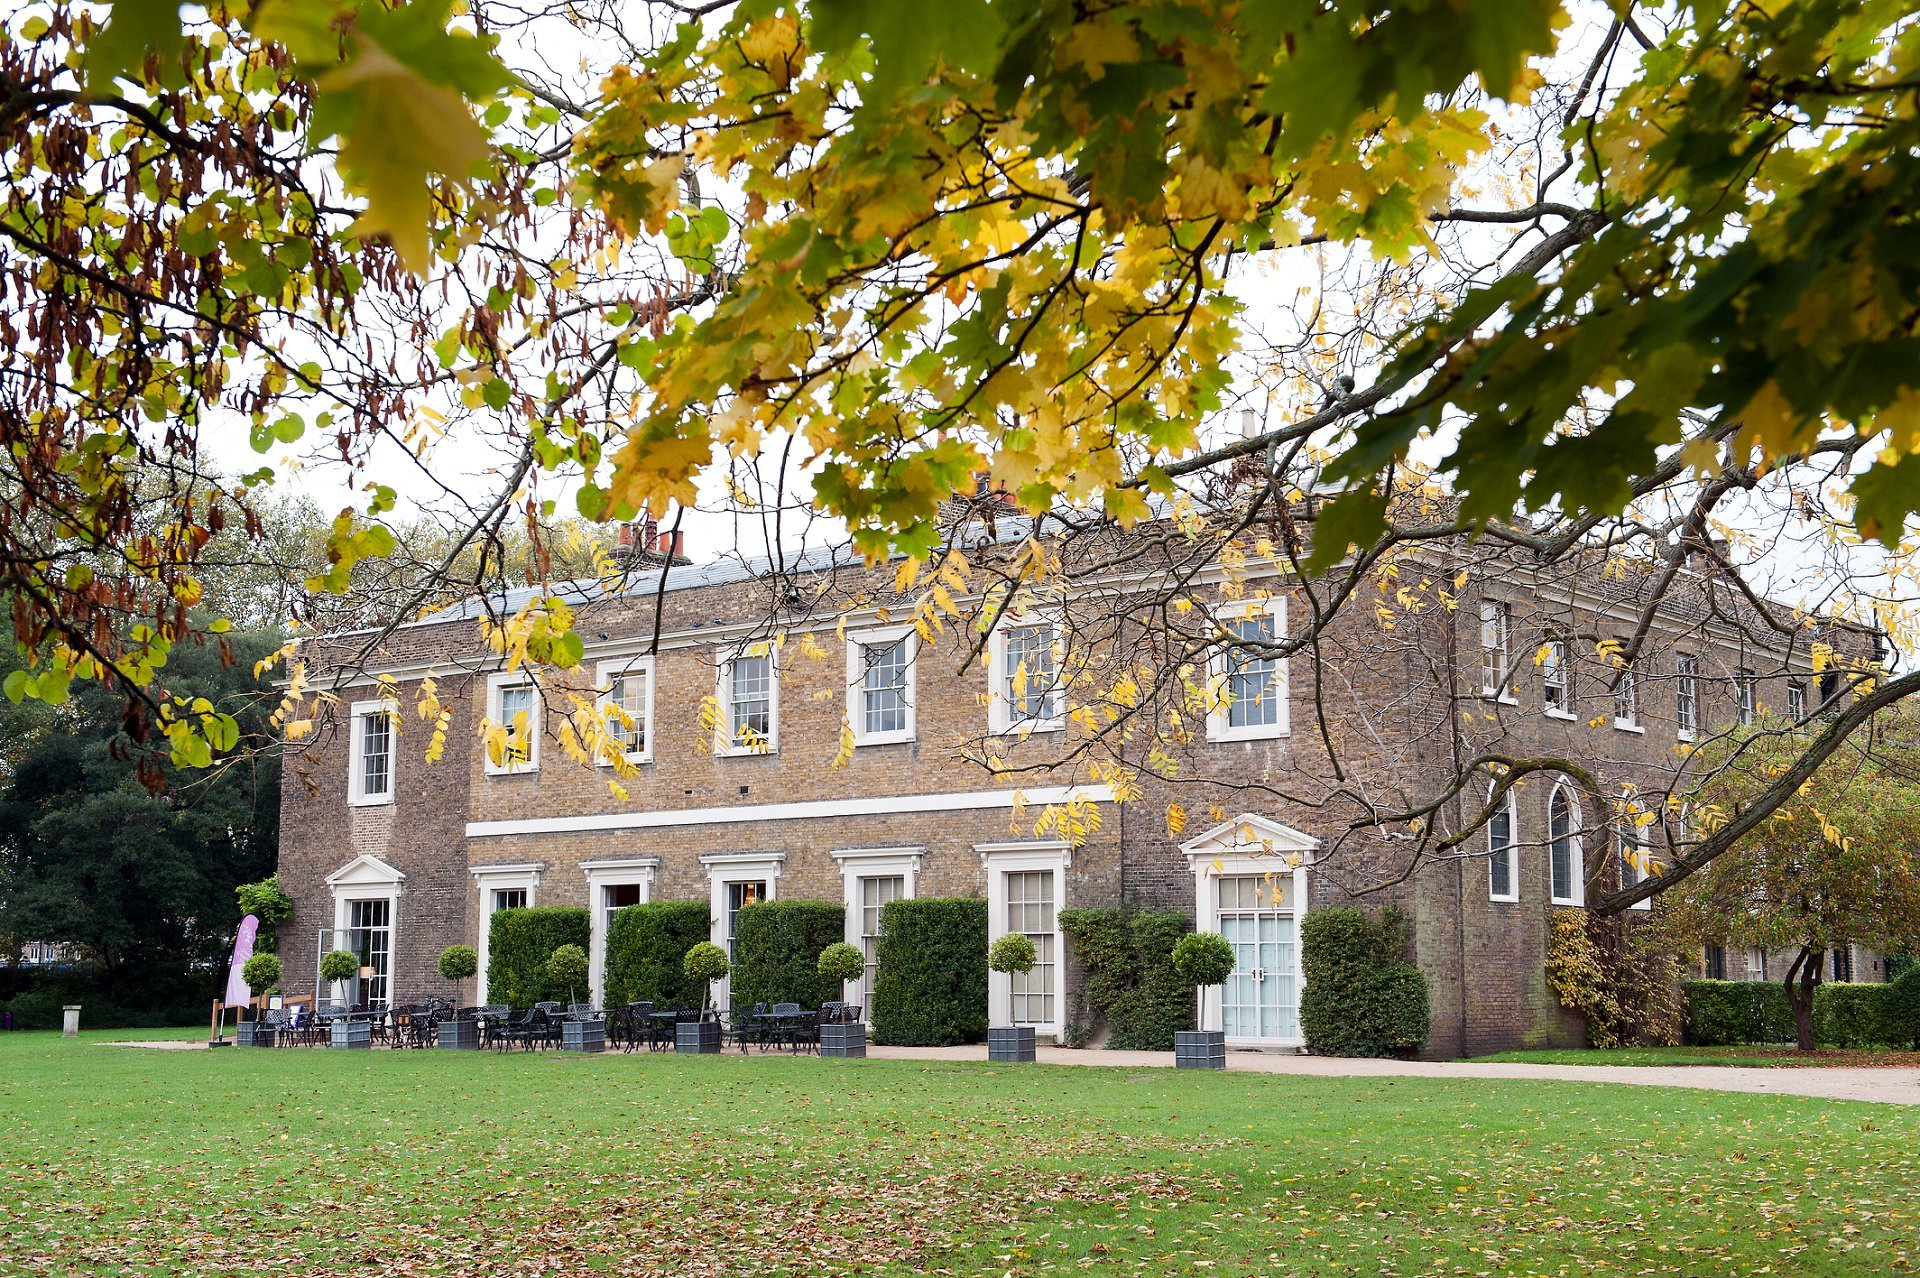 Fulham Palace view from the south lawn through the Autumn trees